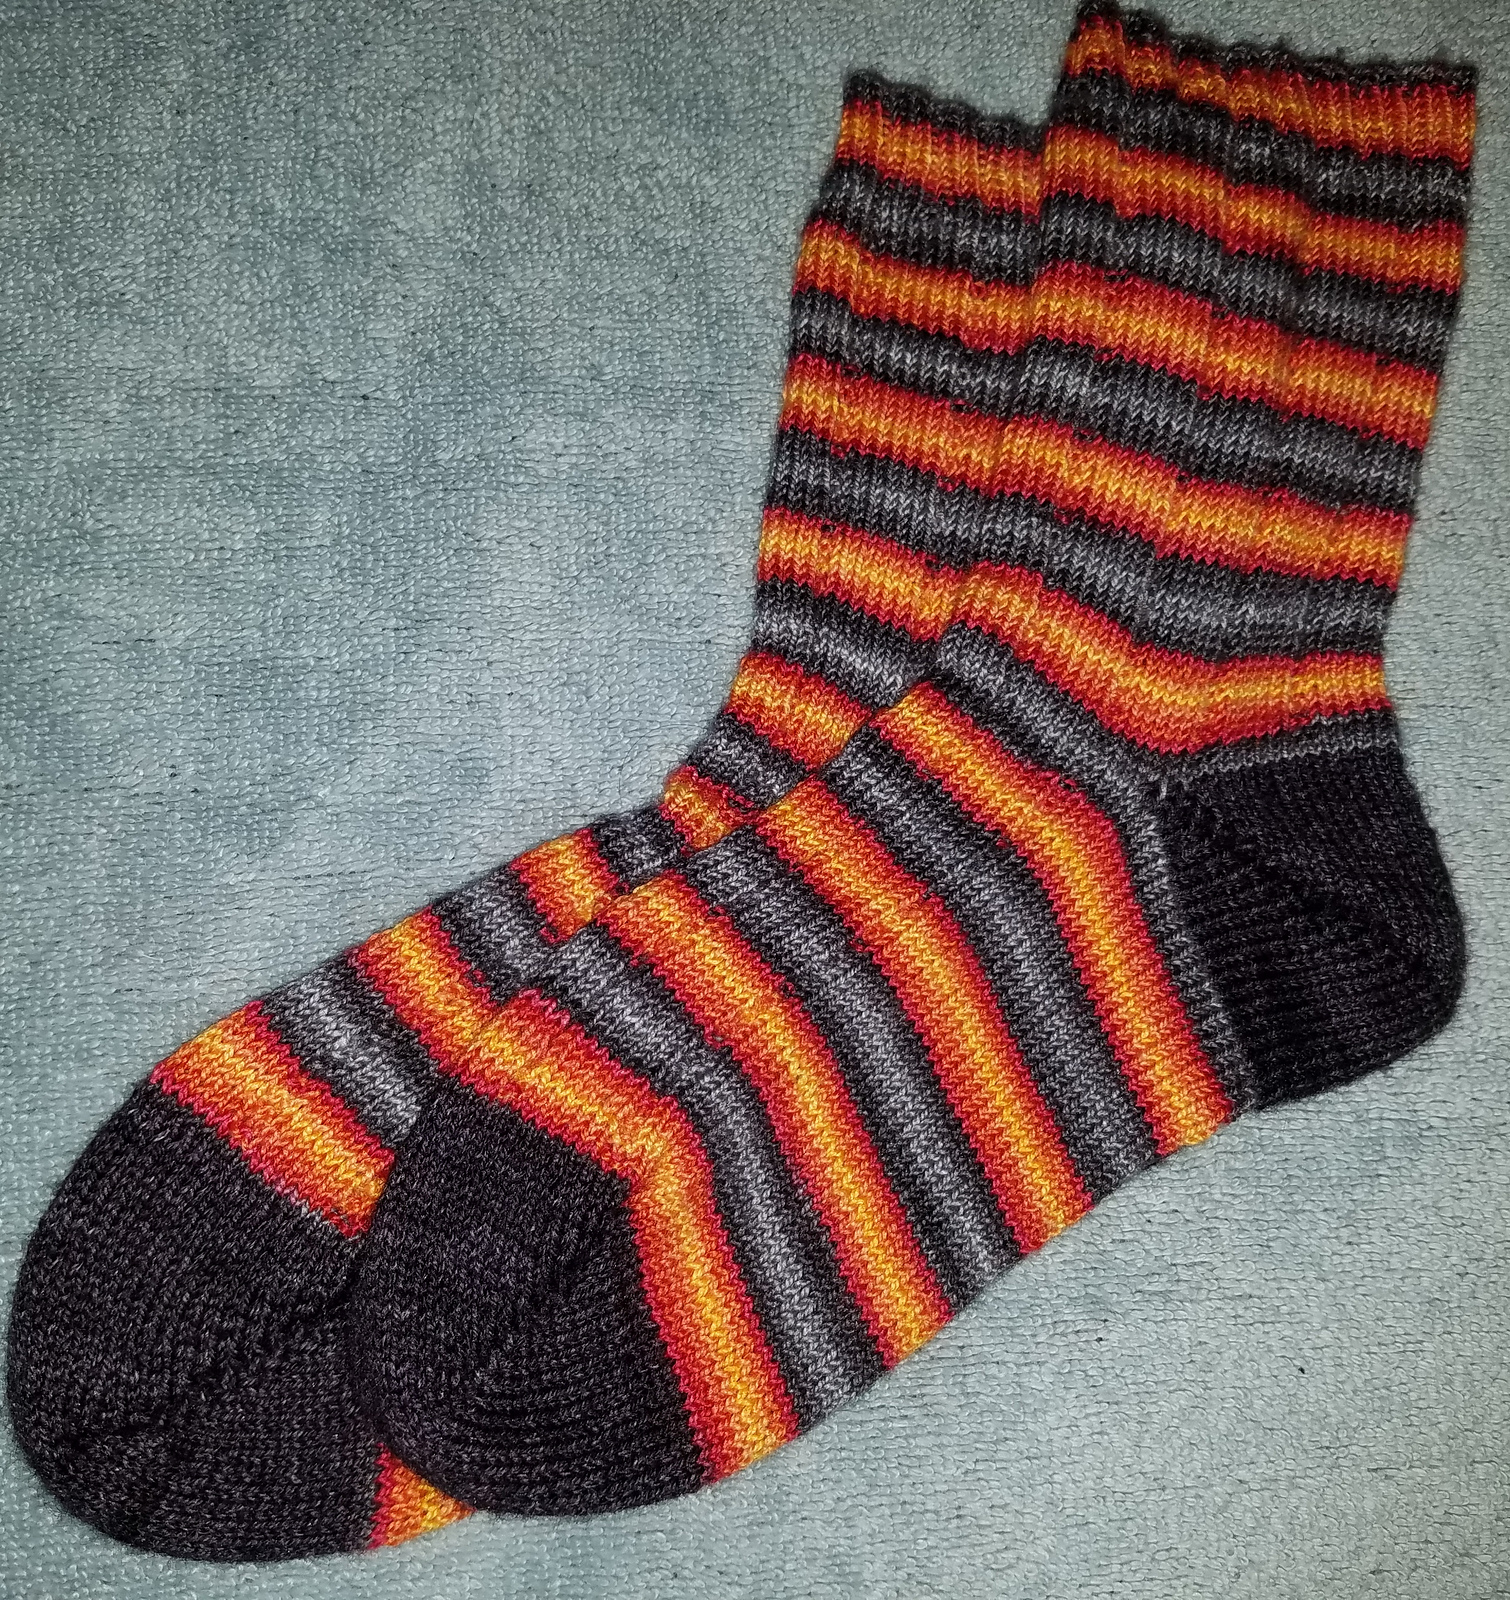 A pair of striped socks, alternating between a red-and-yellow stripe and a black-and-grey stripe